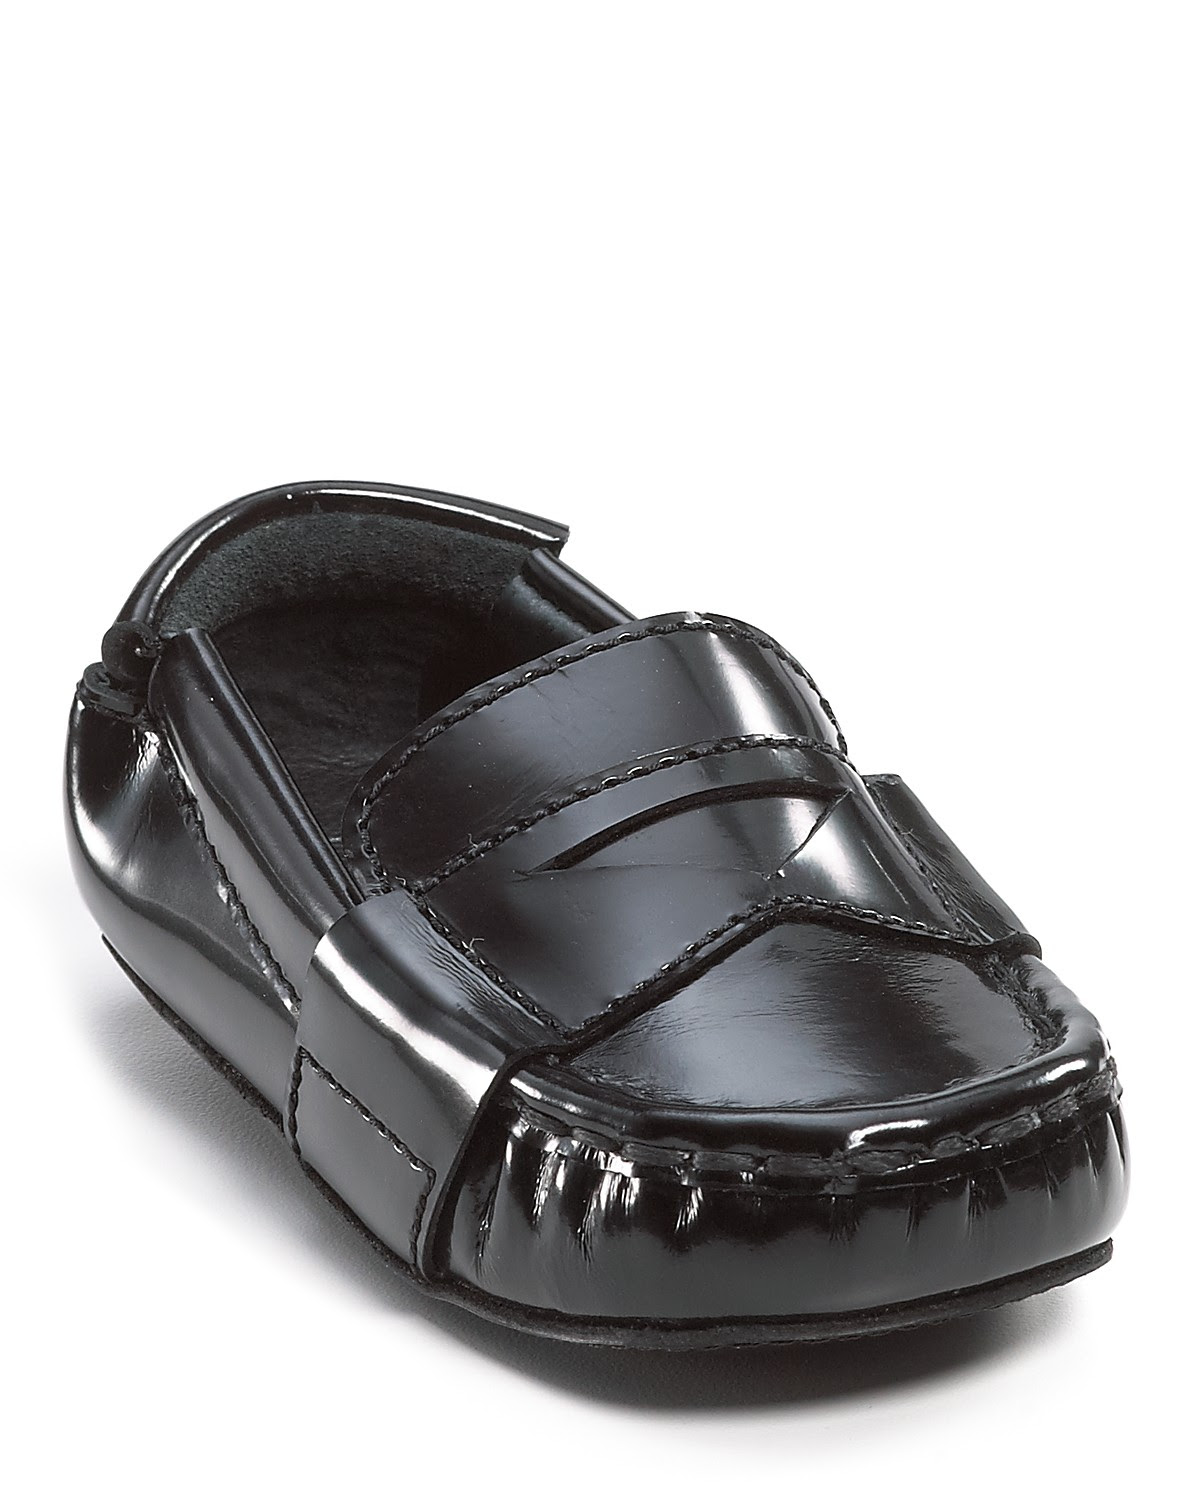 Cole Haan Infant Boys' Mini Penny Loafers - Sizes 1-4 ...